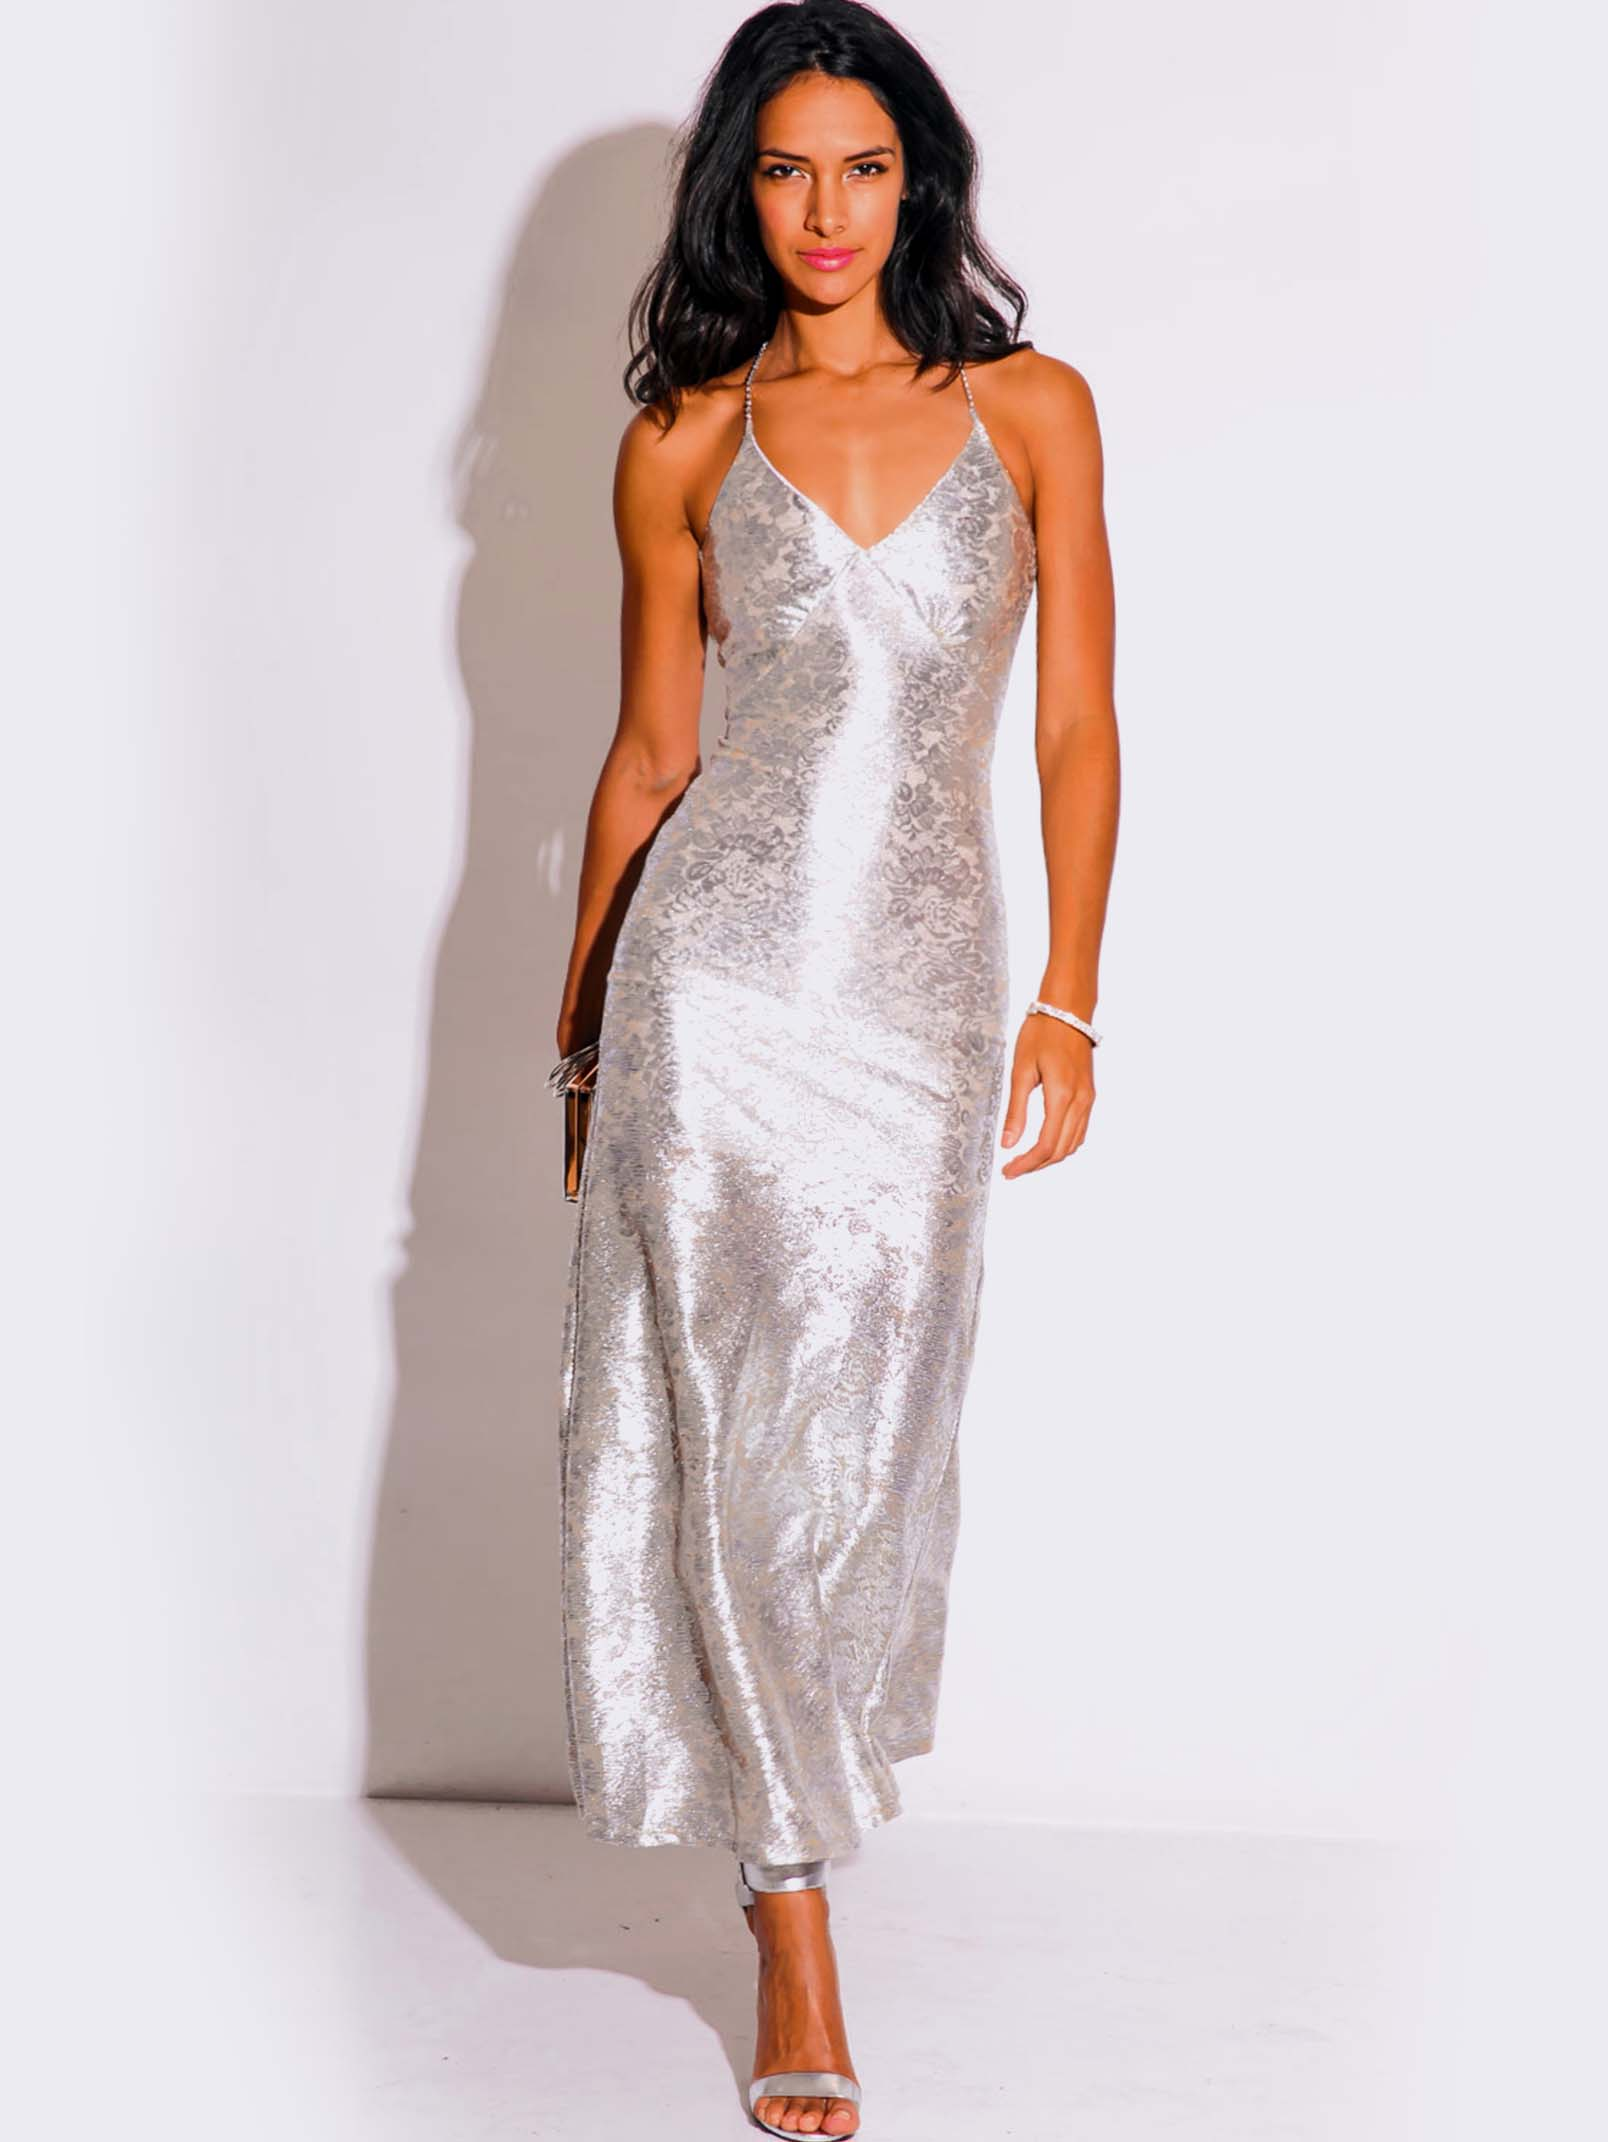 Light Silver Metallic Formal Evening Dress Modishonline Com